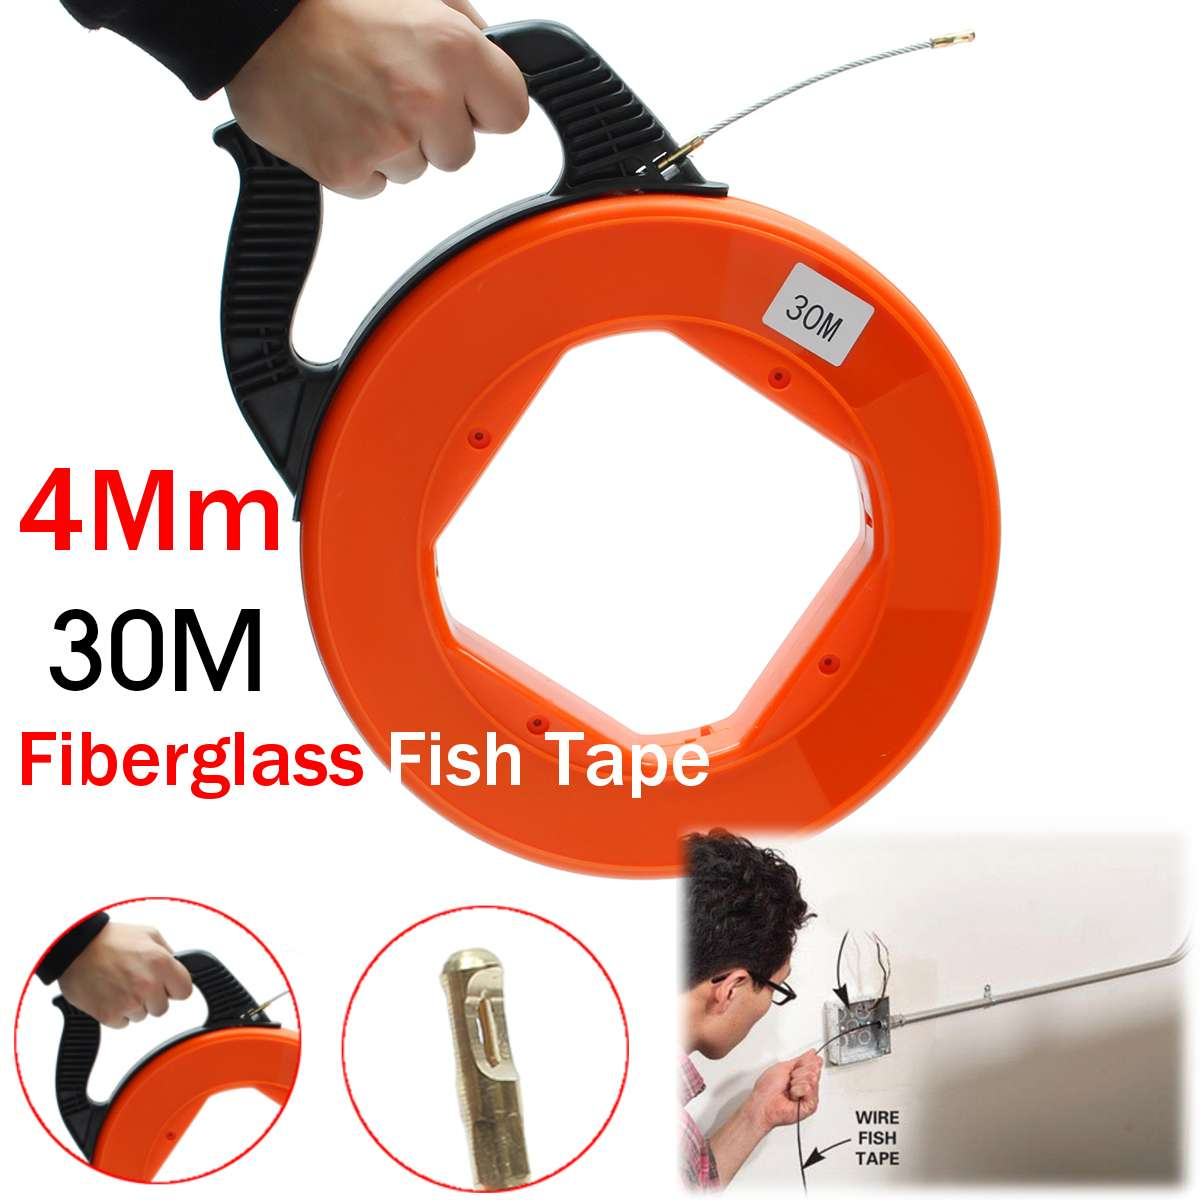 4mm Portable 30 Meter Fiberglass Fish Tape Fishing Tool Reel Puller Conduit Duct Rodder Pulling Wire Cable4mm Portable 30 Meter Fiberglass Fish Tape Fishing Tool Reel Puller Conduit Duct Rodder Pulling Wire Cable